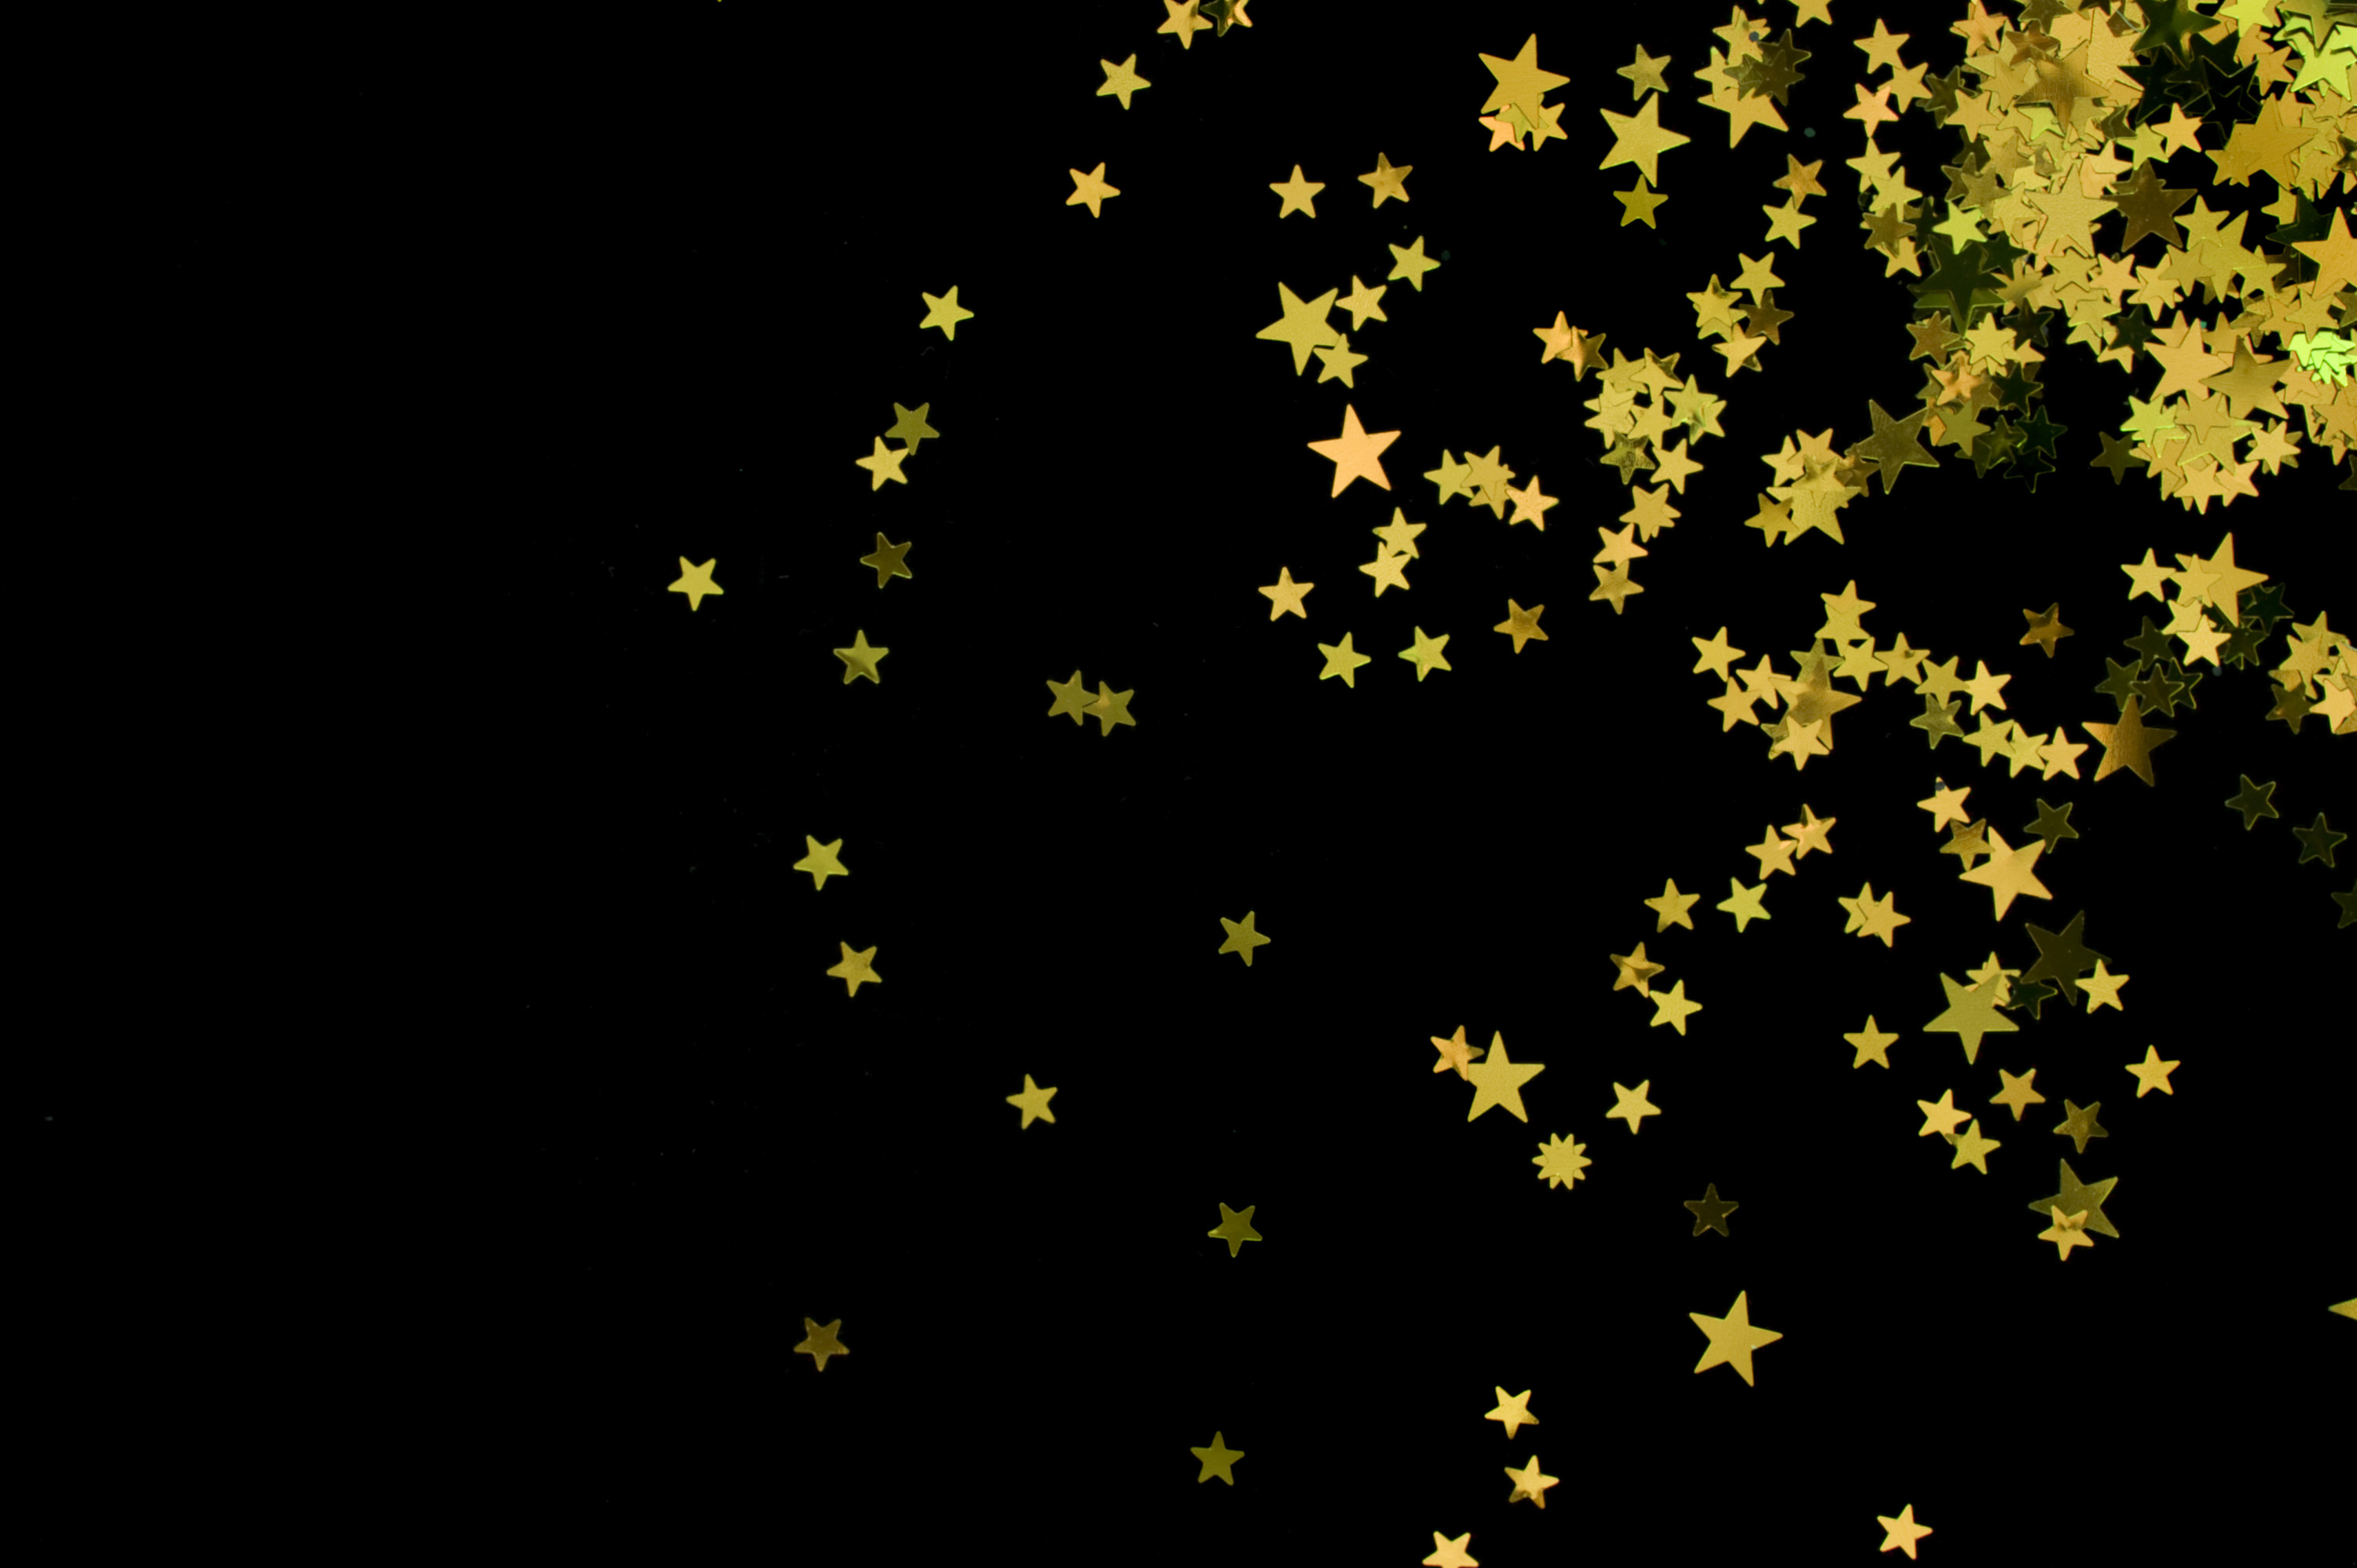 Gold sparkle star clipart suggest